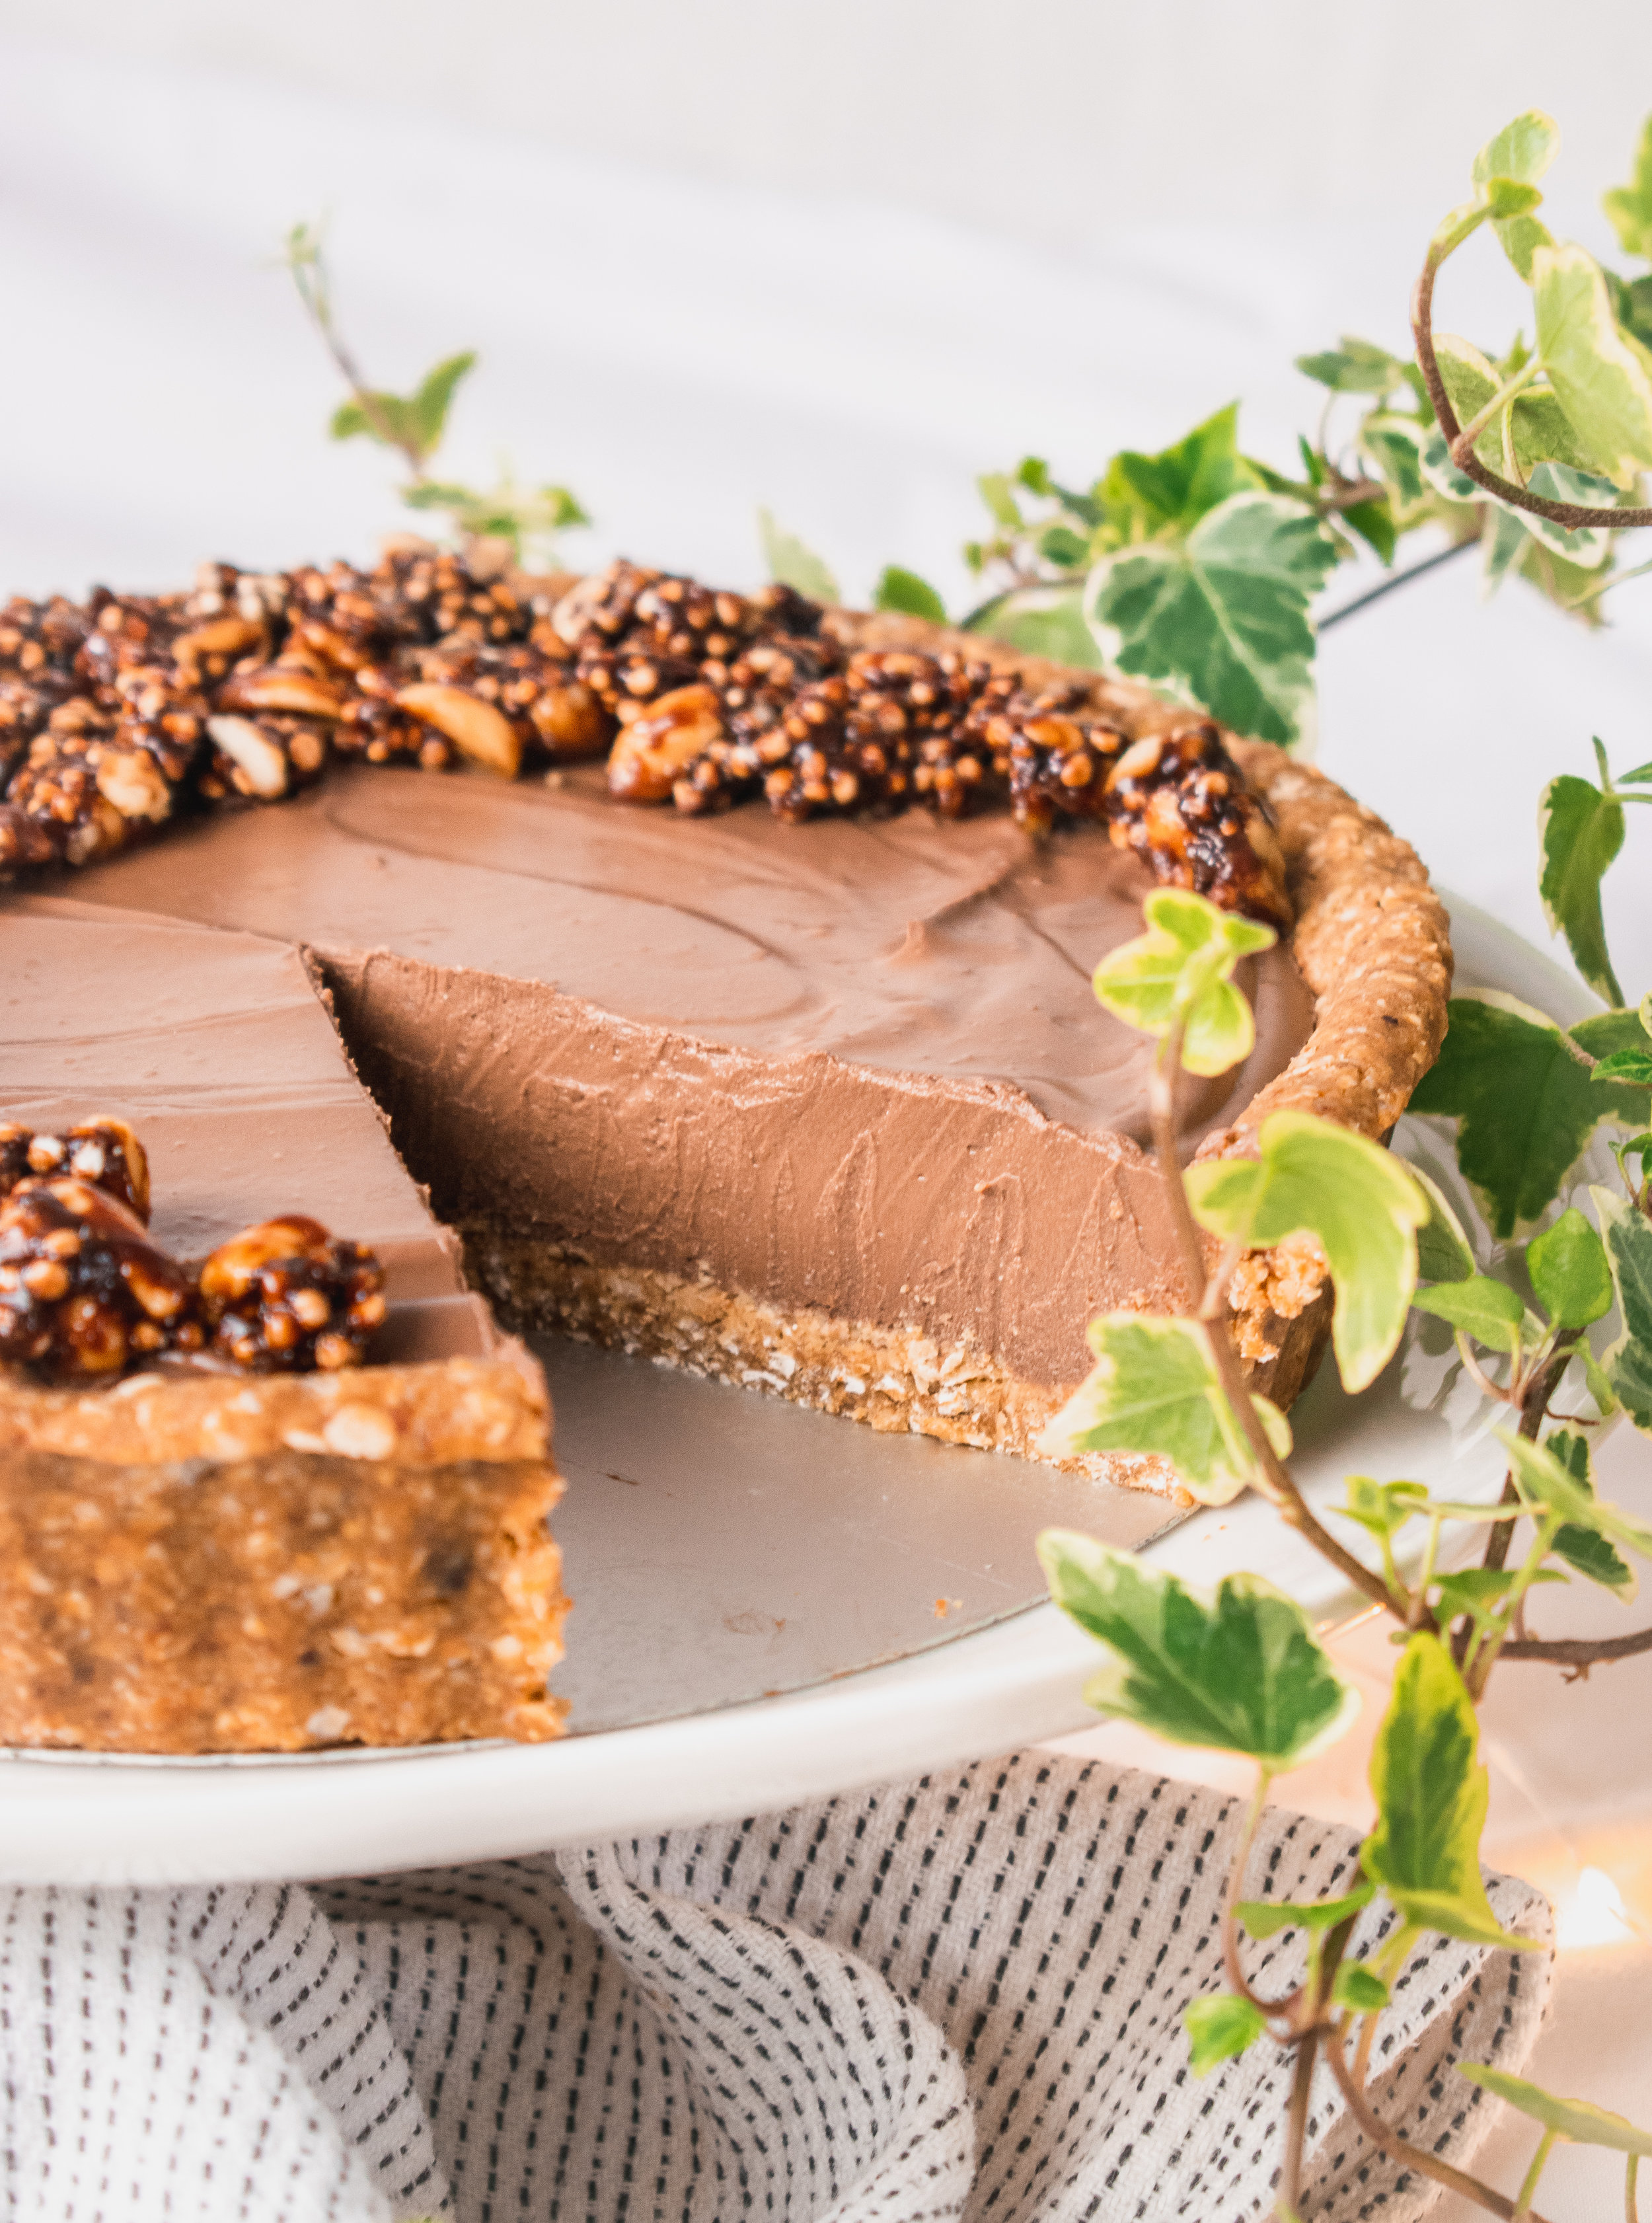 Cacao and Caramel Crescent Tart with Perkier Crumble Topping